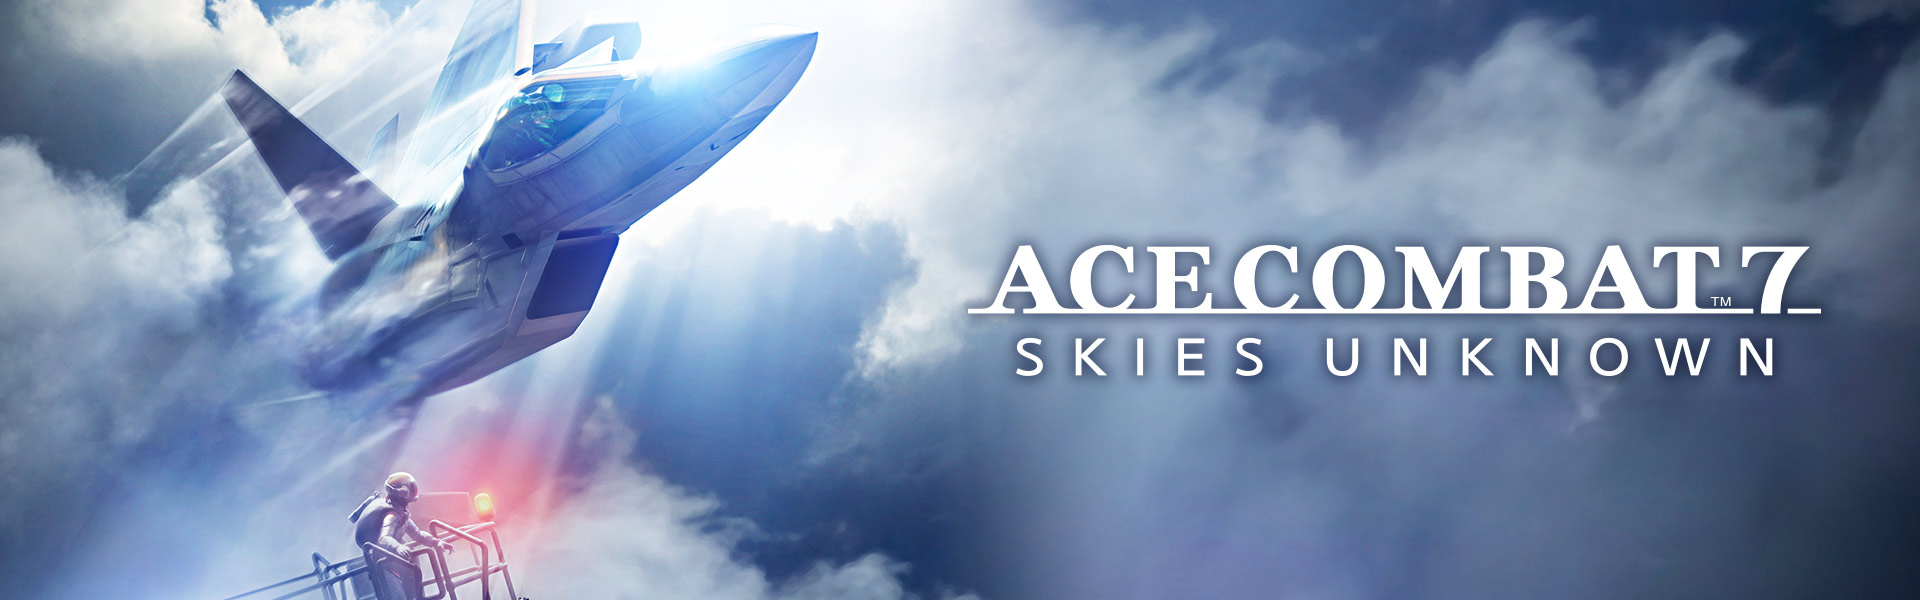 ACE COMBAT™ 7 : SKIES UNKNOWN, avion de combat à réaction qui passe à travers le ciel